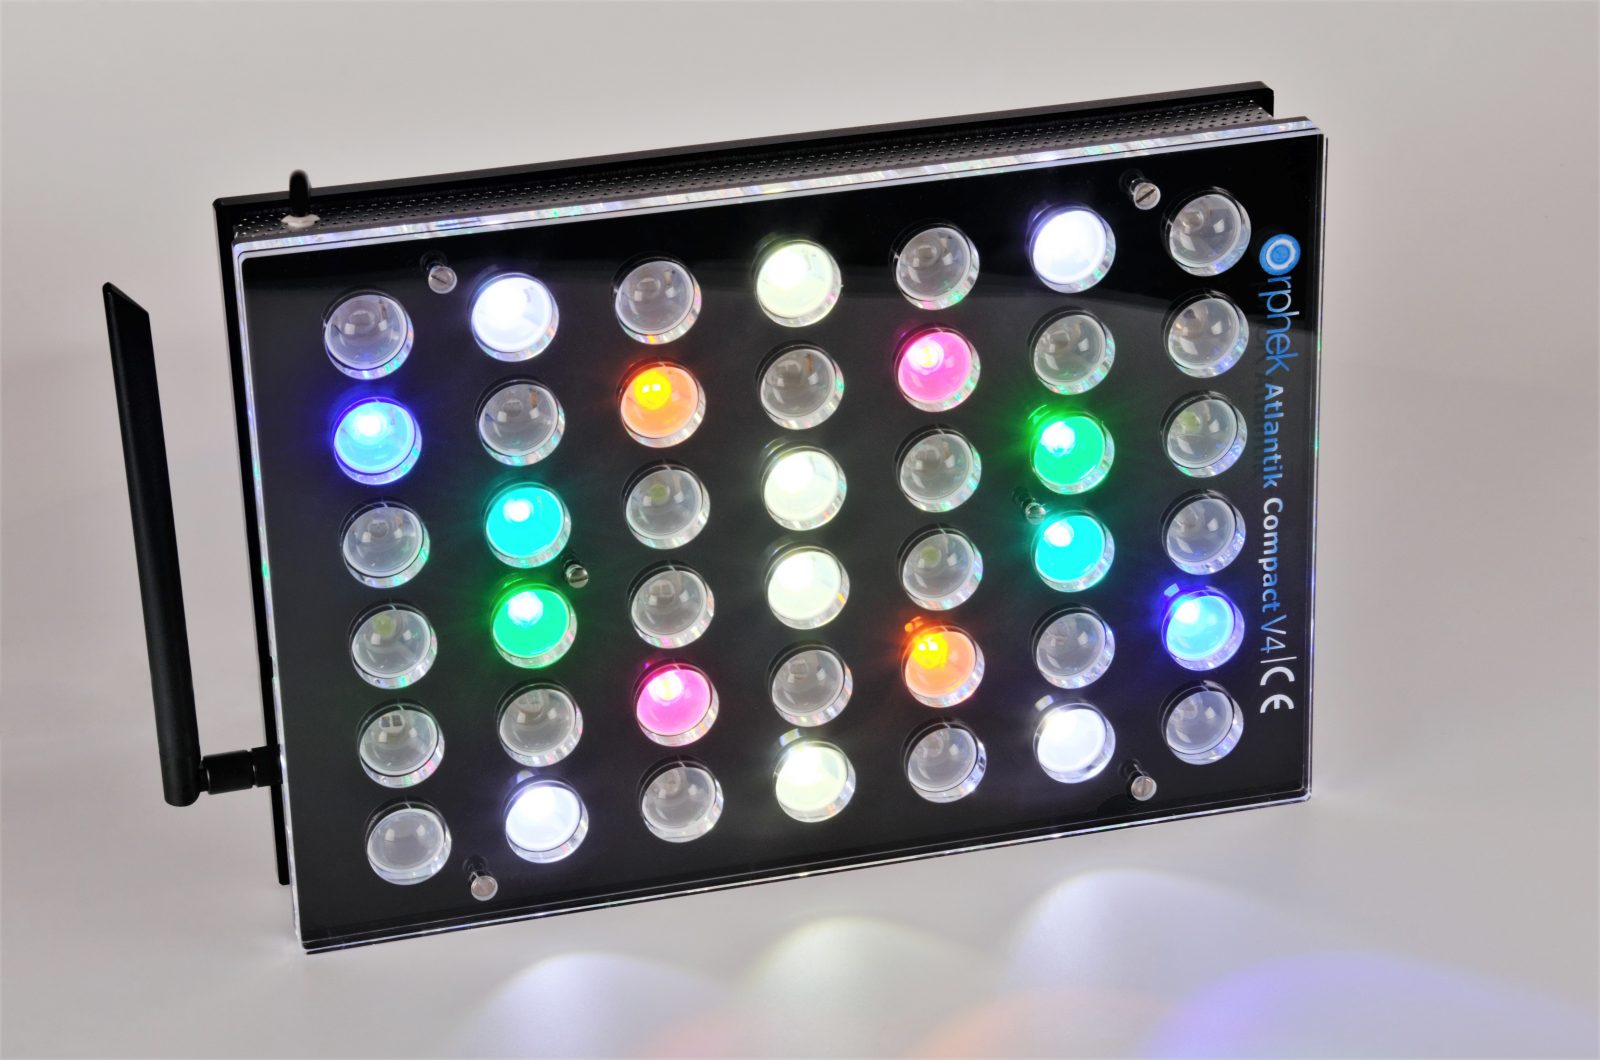 Orphek Aquarium LED Lighting Atlantik Compact V4 cahya ing saluran 1 + 4